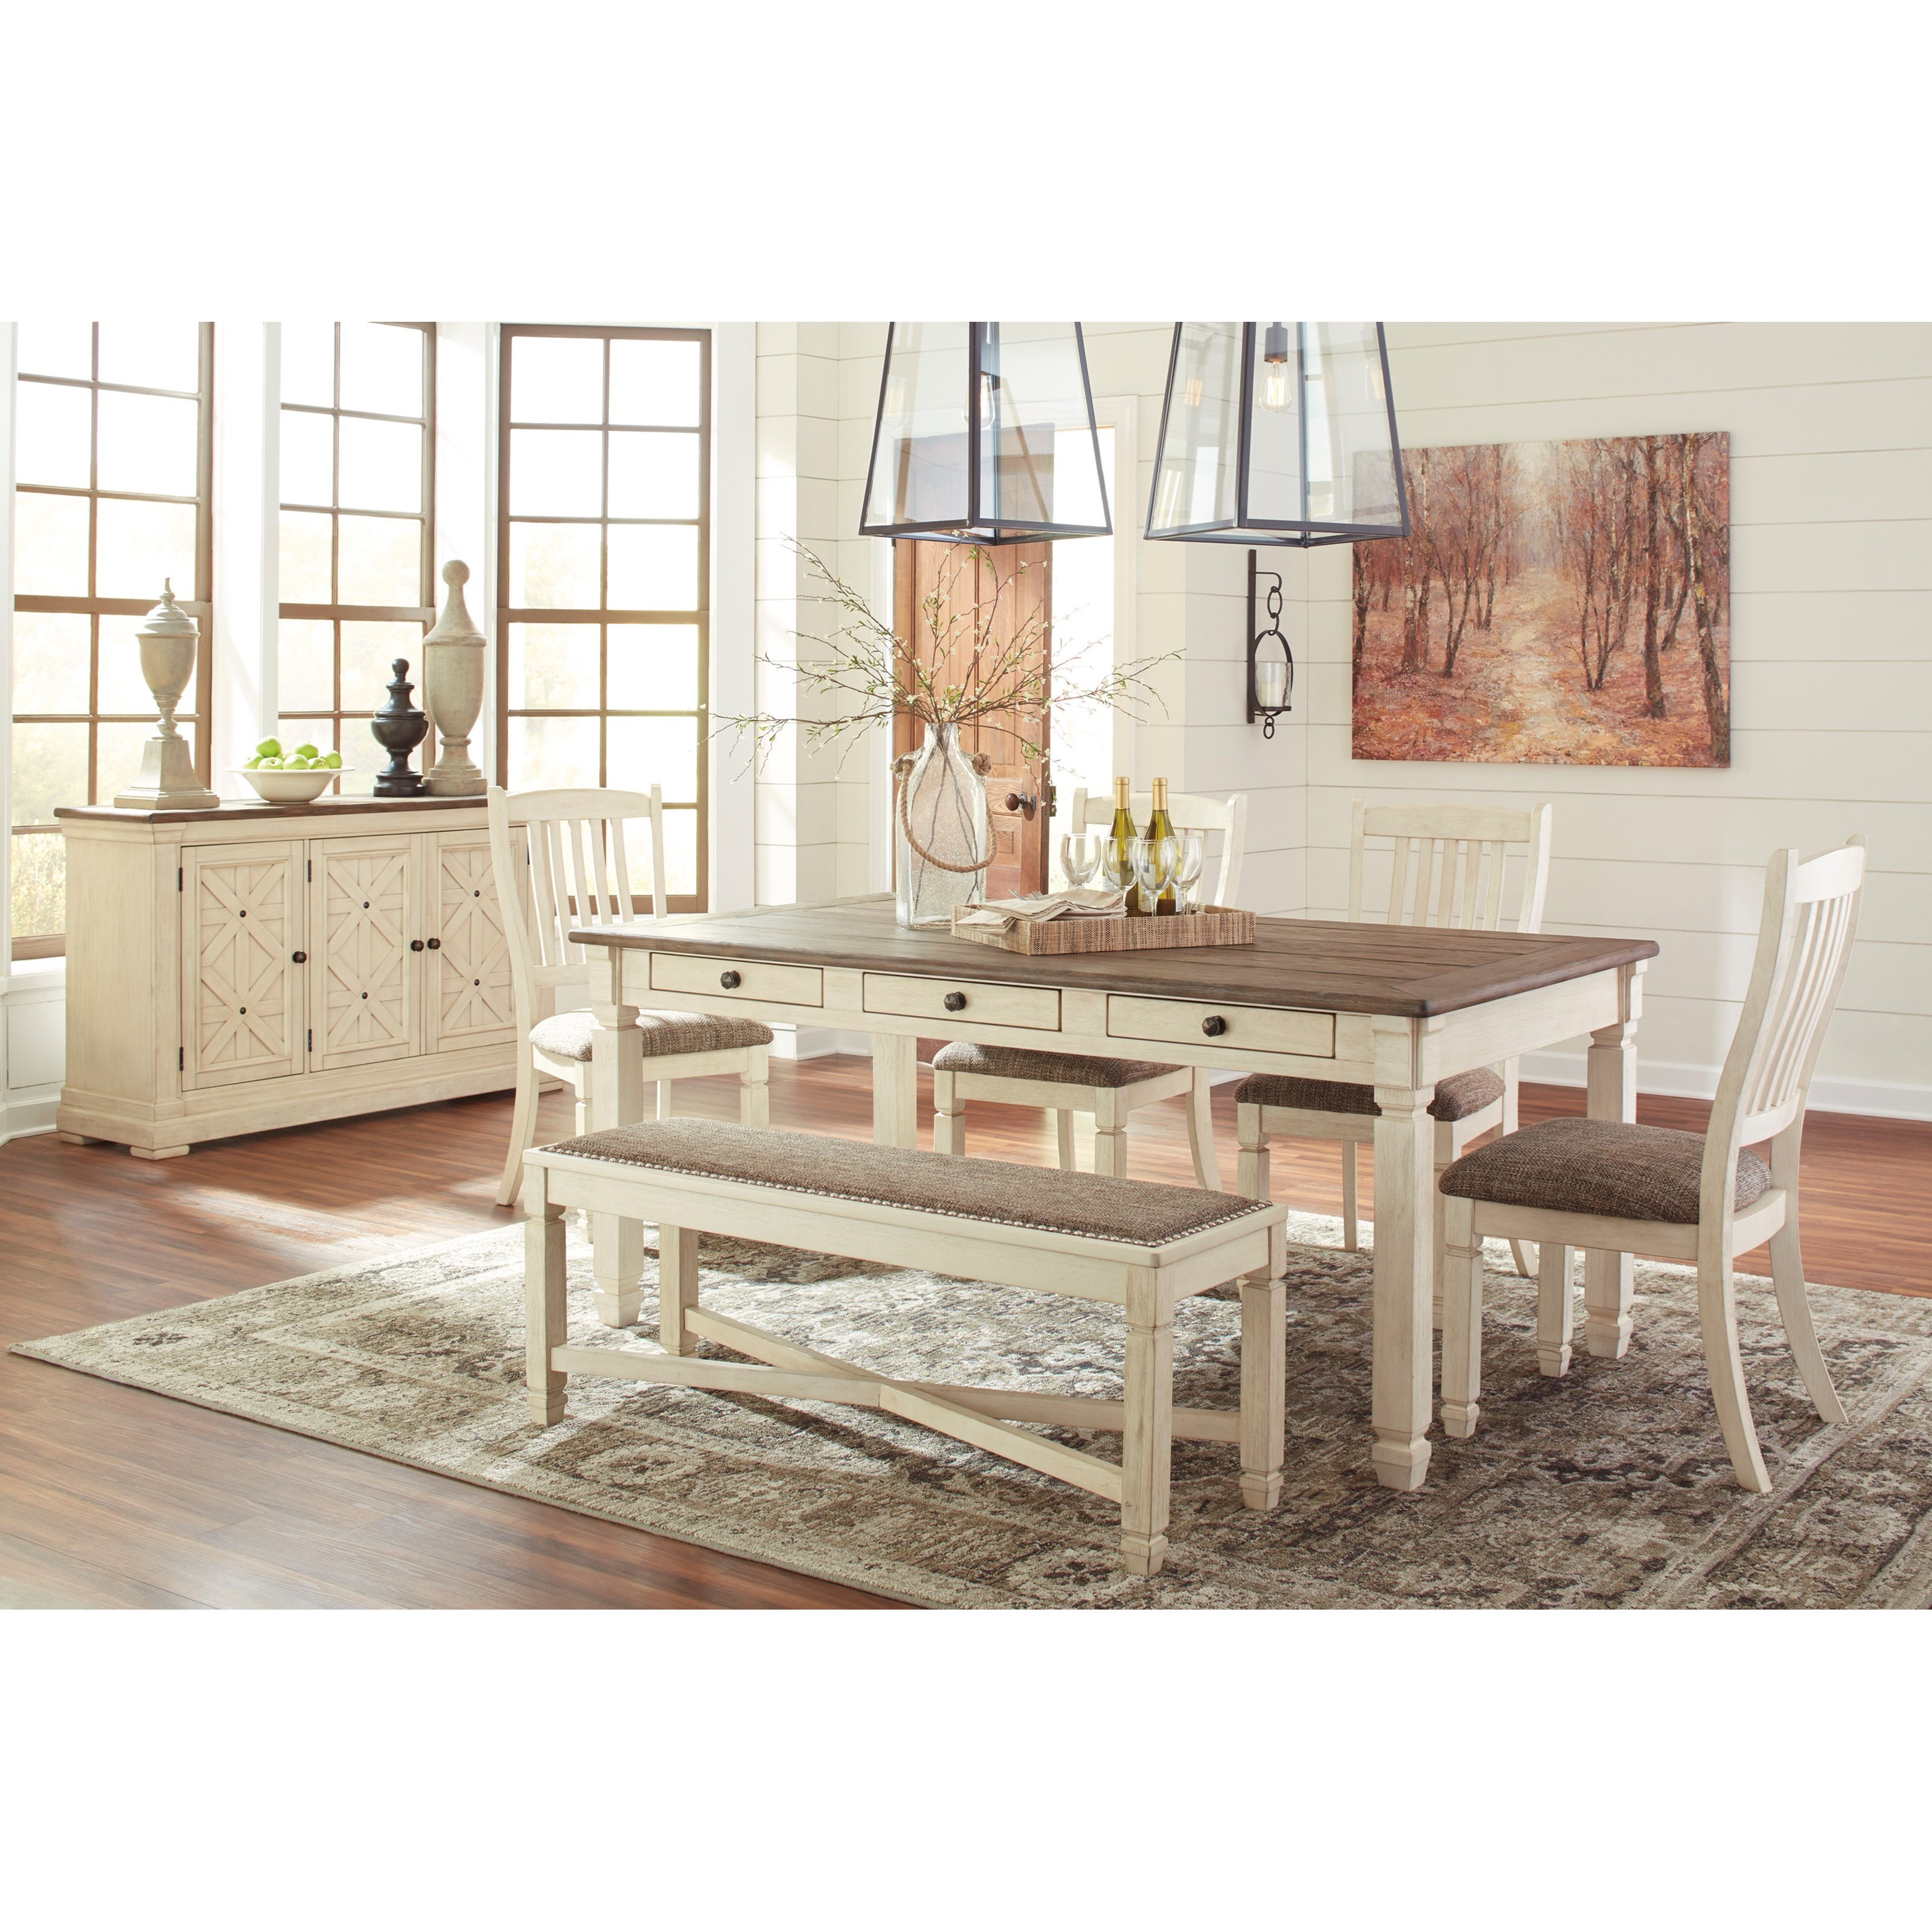 Bolanburg Formal Dining Room Group by Signature Design by Ashley at Northeast Factory Direct